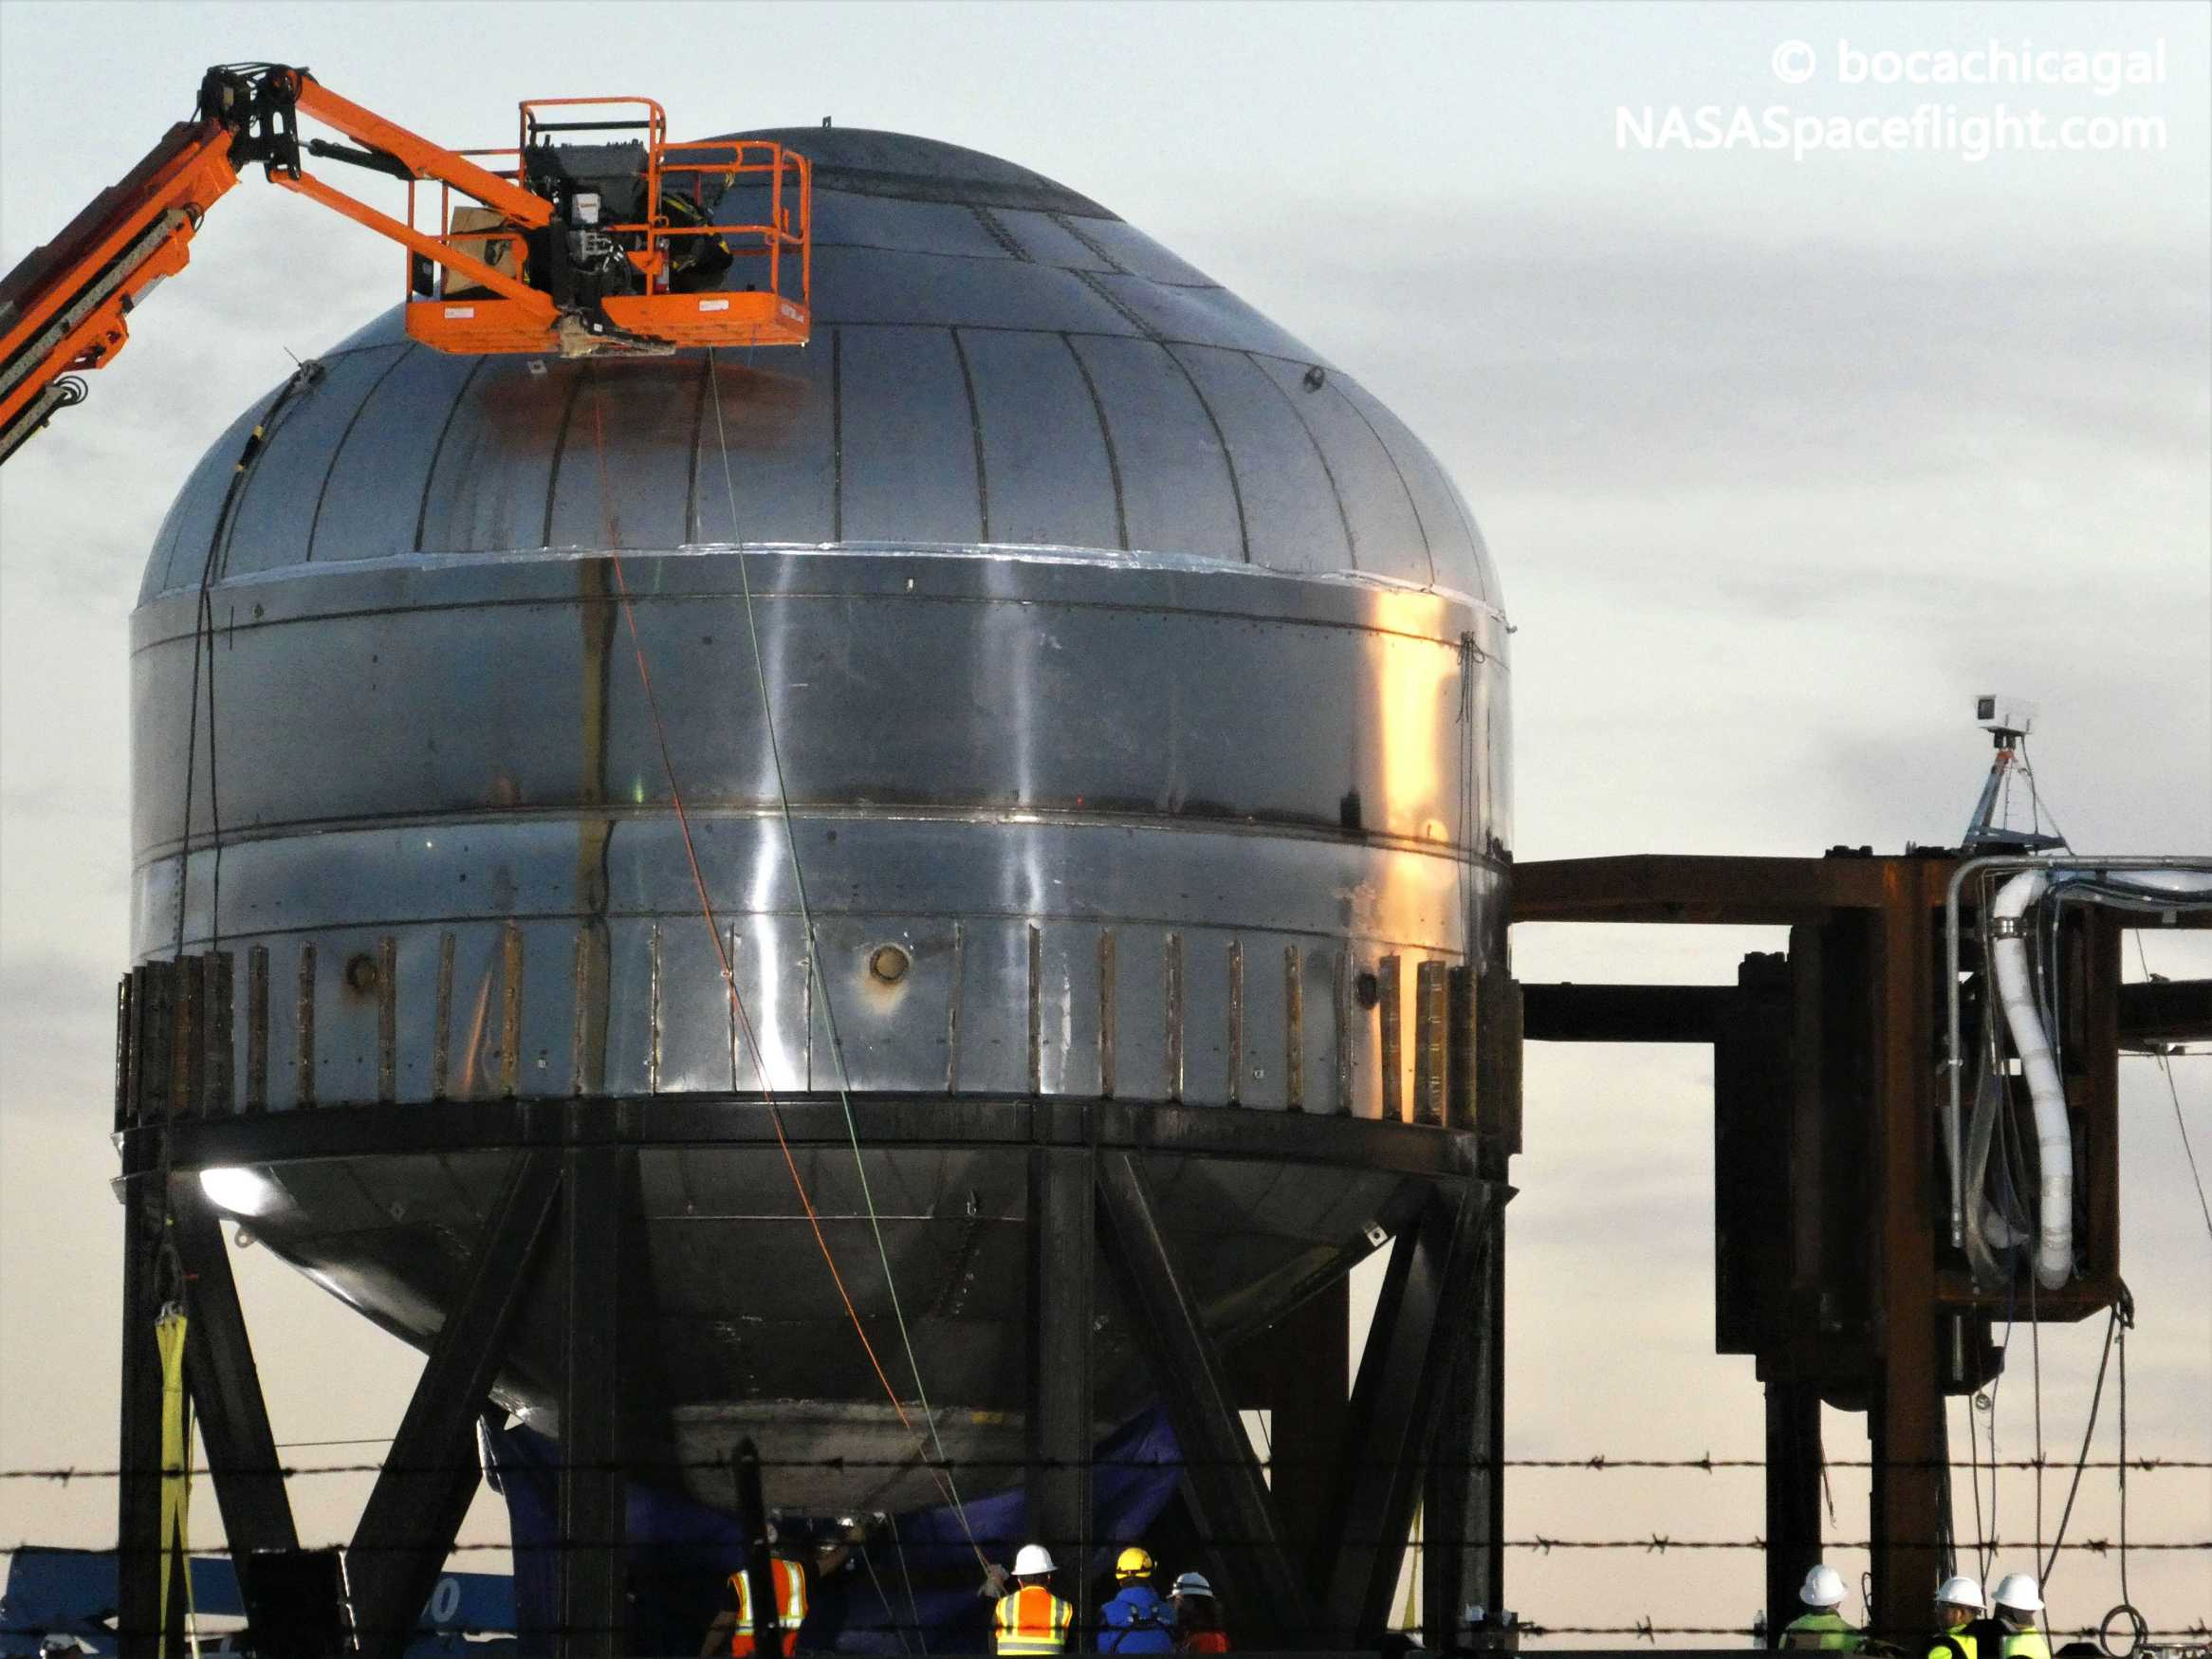 Starship Boca Chica 010920 (NASASpaceflight – Nomadd) test tank 3 (c)